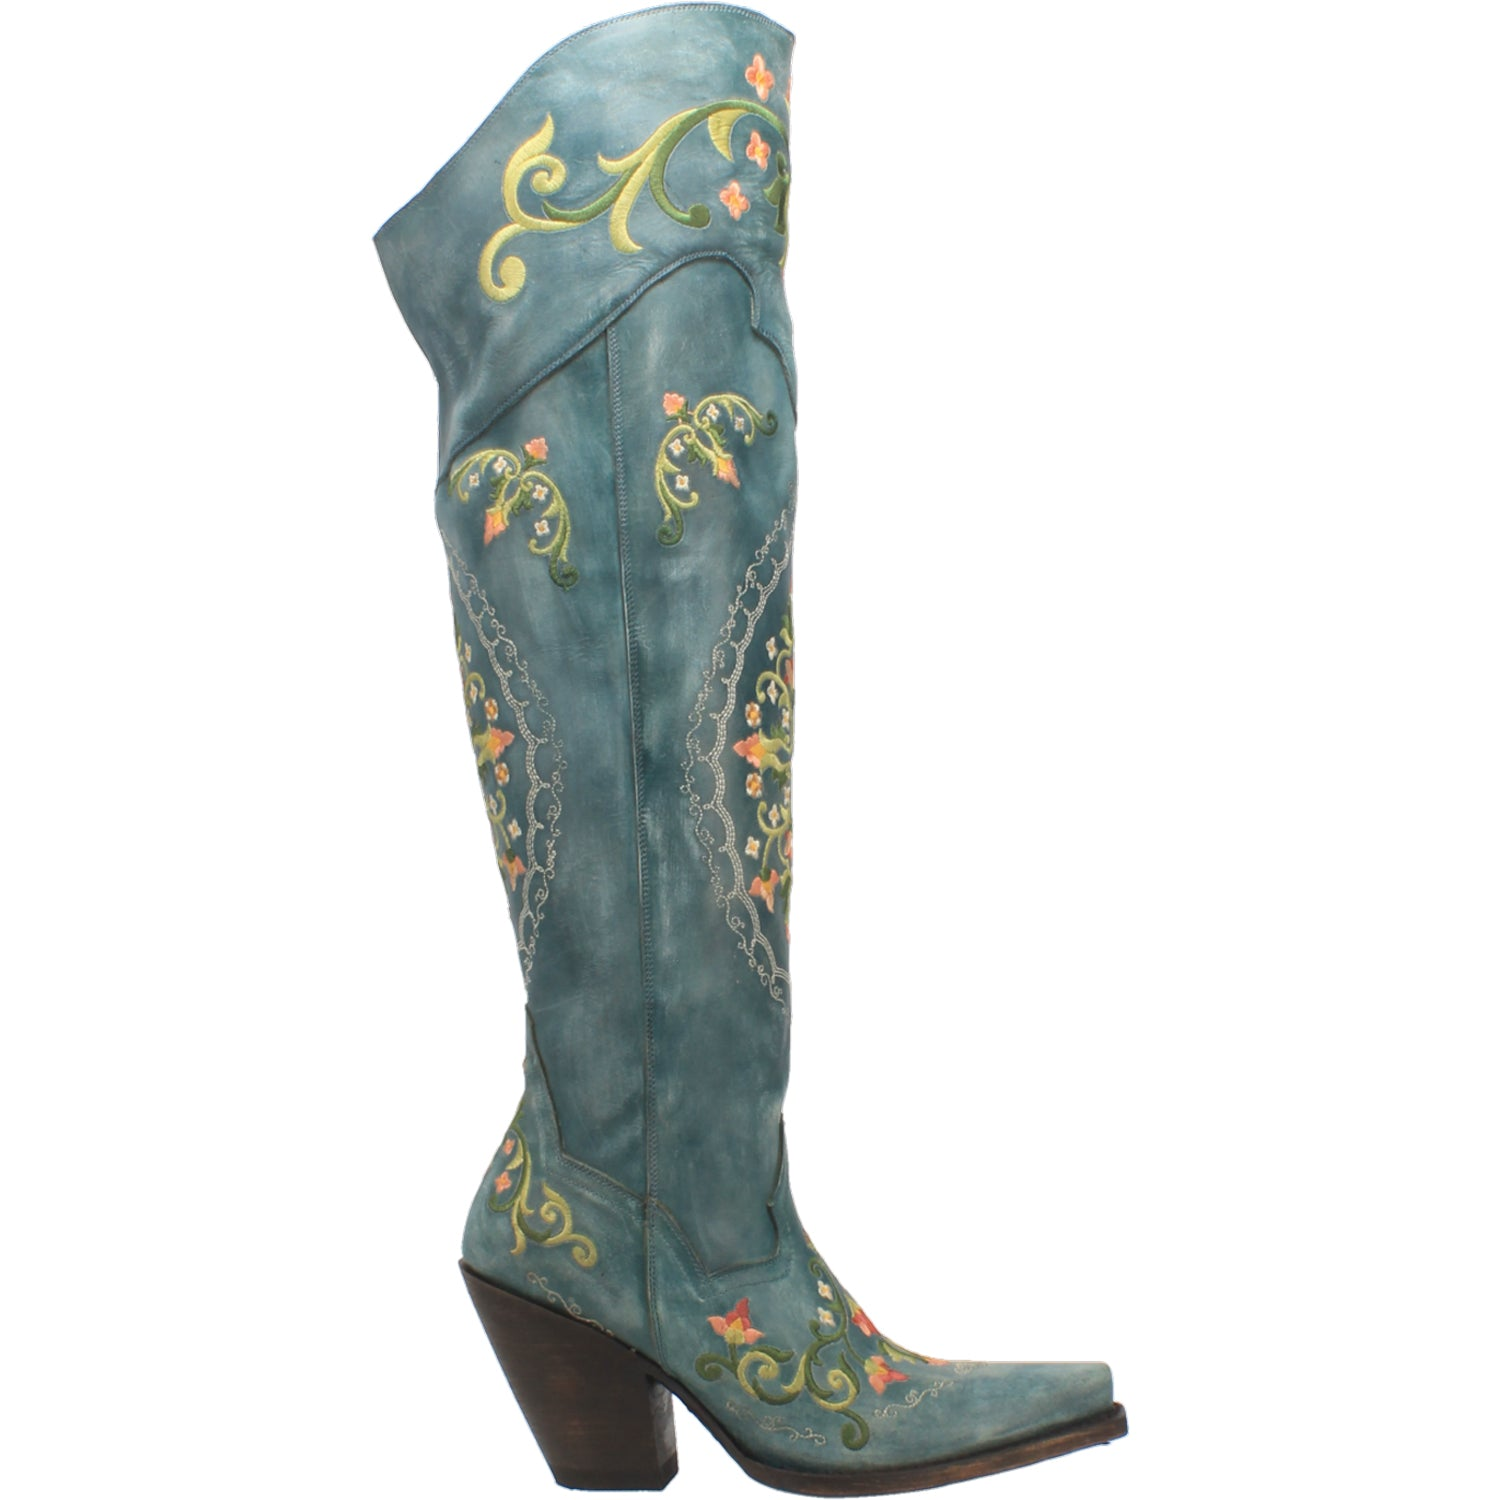 FLOWER CHILD LEATHER BOOT 15267551412266